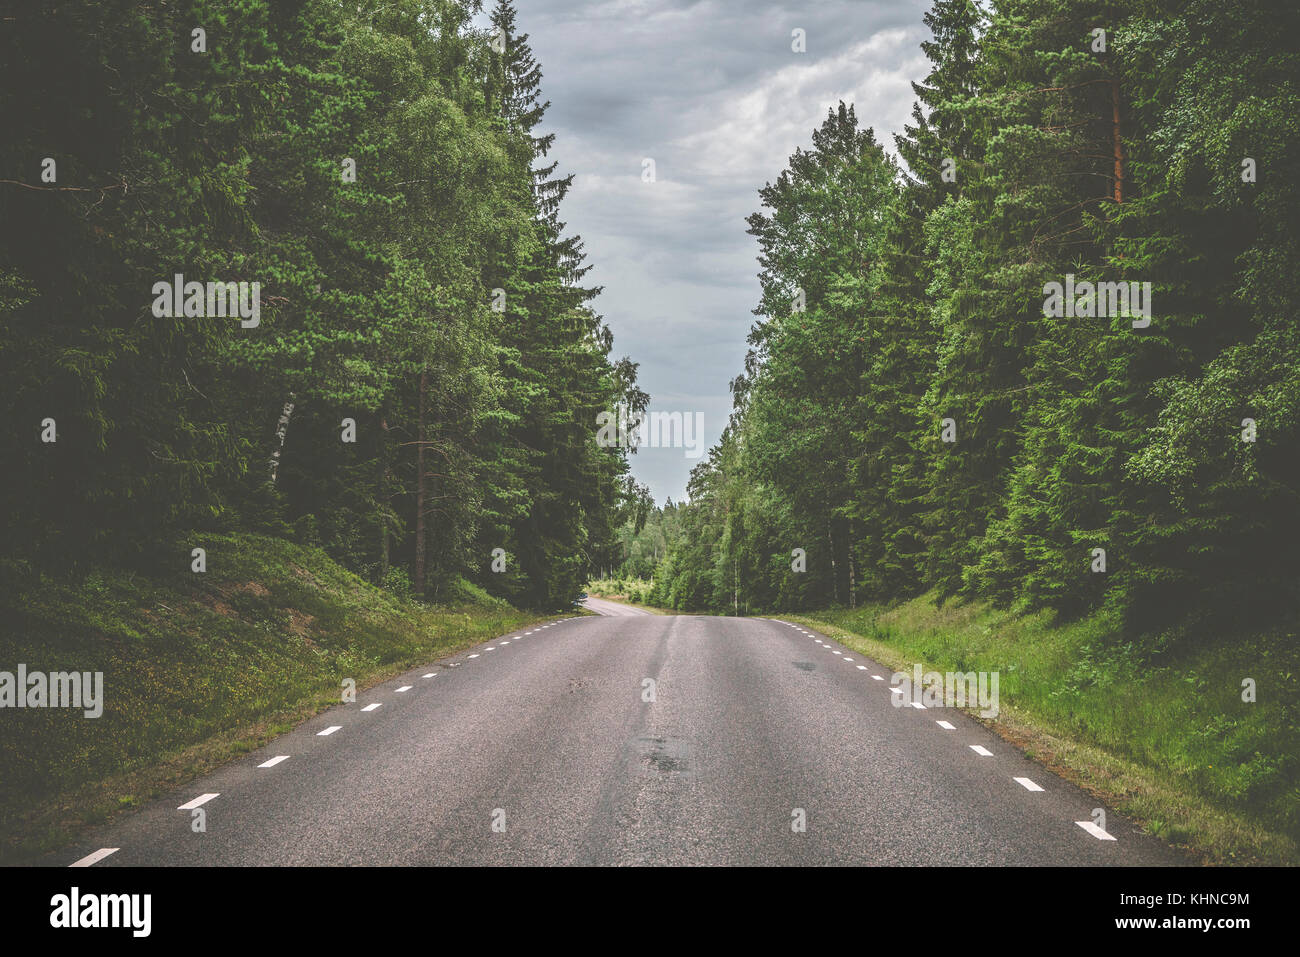 Road with white stripes made of asphalt in a spooky pine tree forest with tall trees and cloudy weather - Stock Image